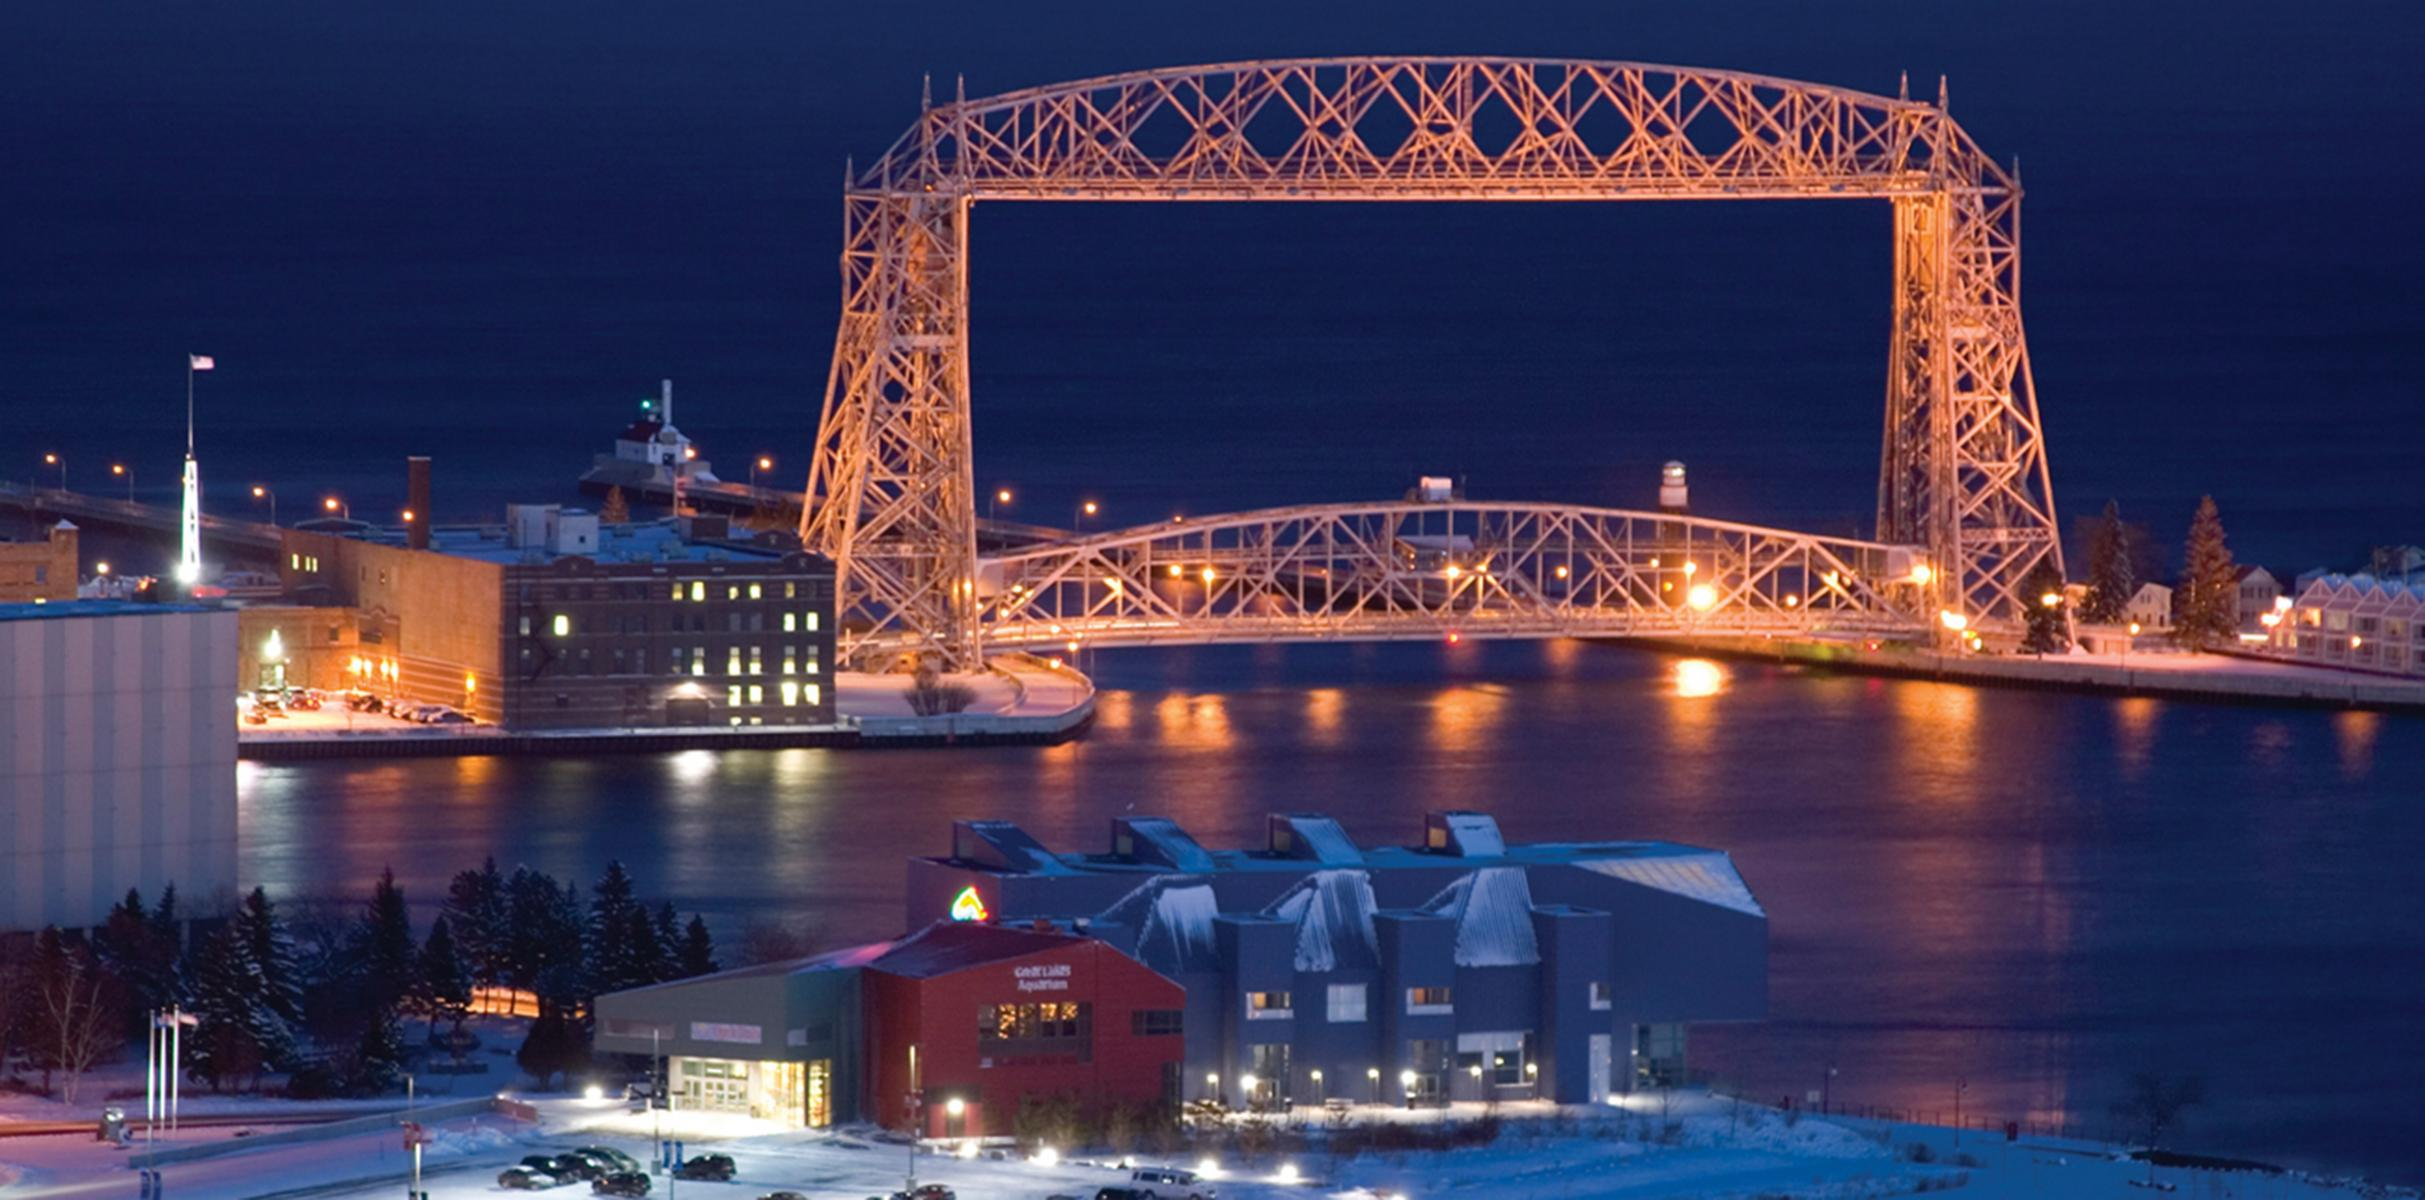 lift bridge at night